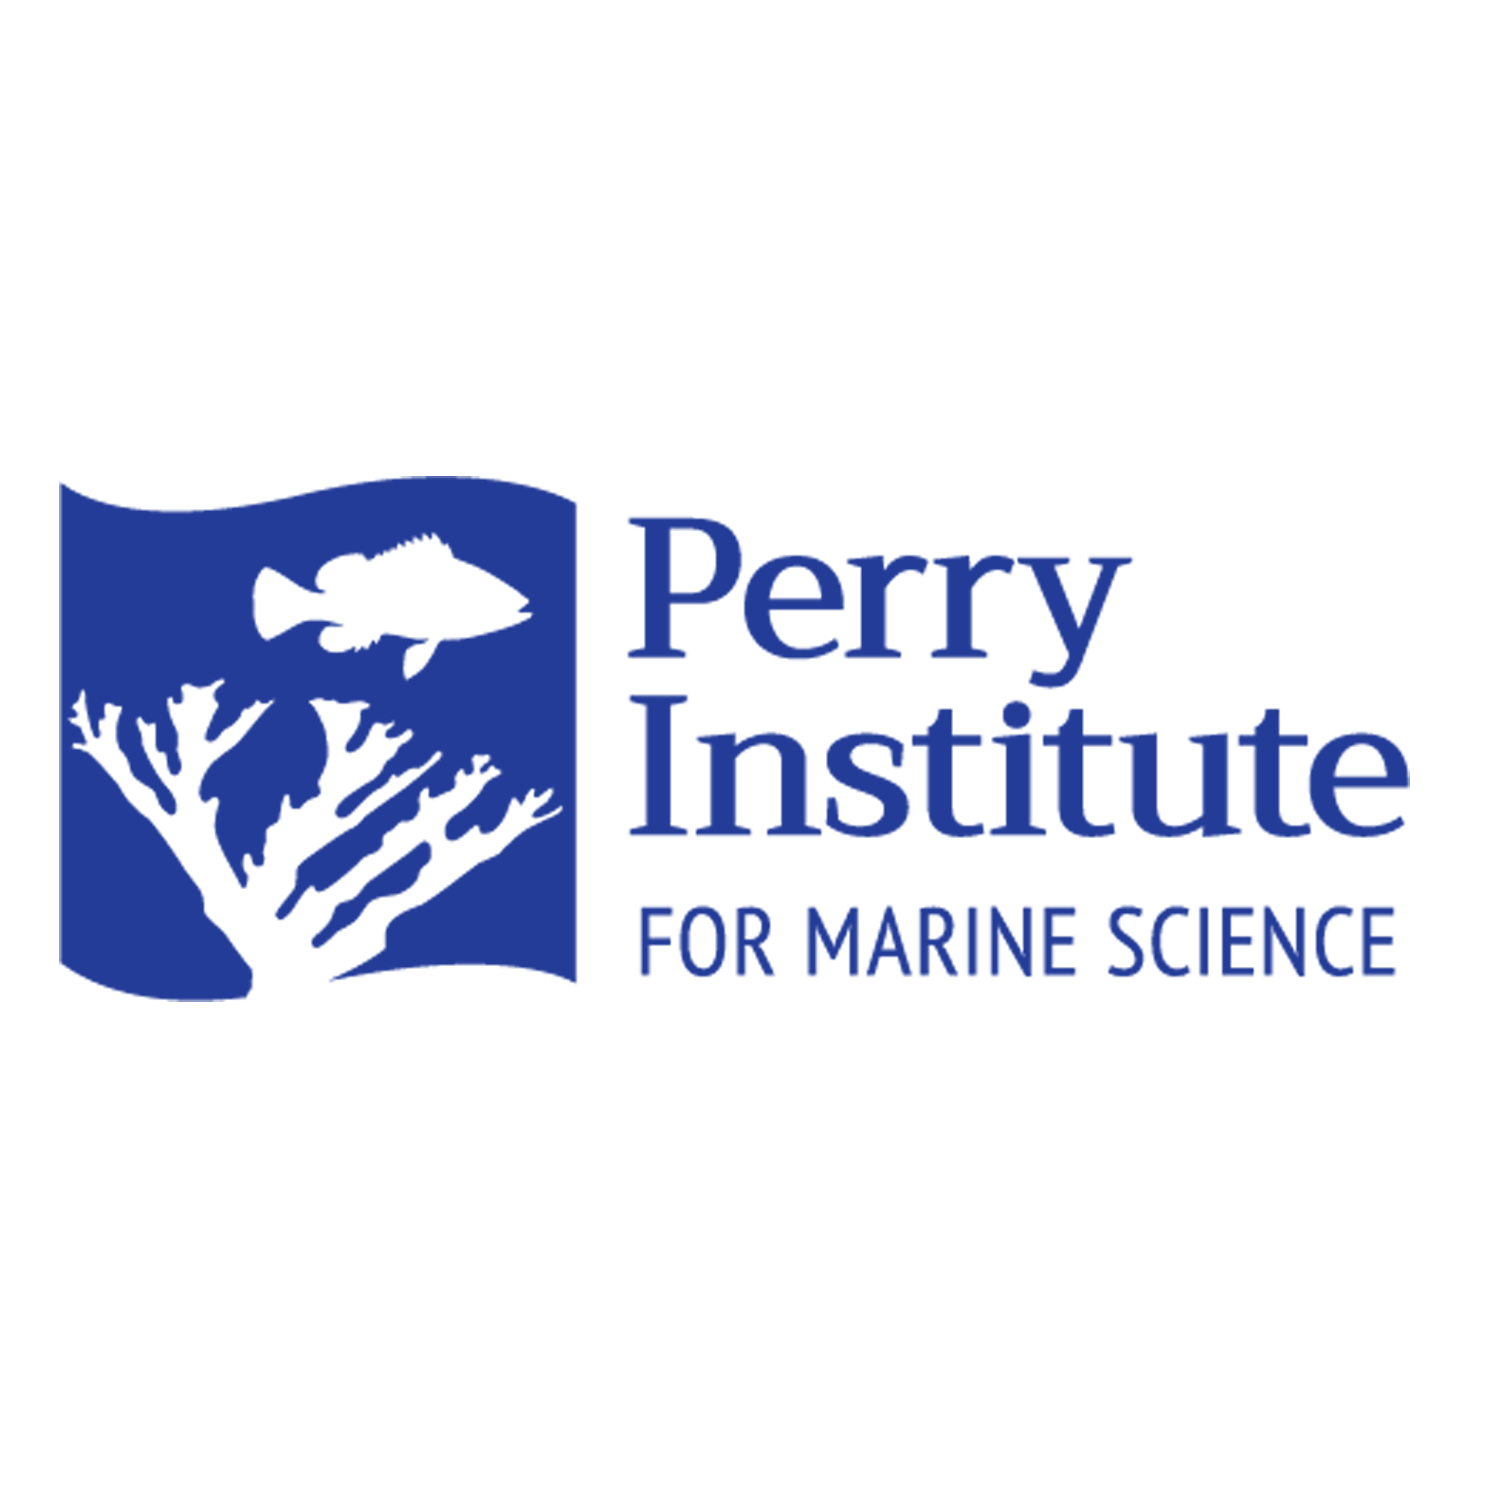 Perry Institute for Marine Science